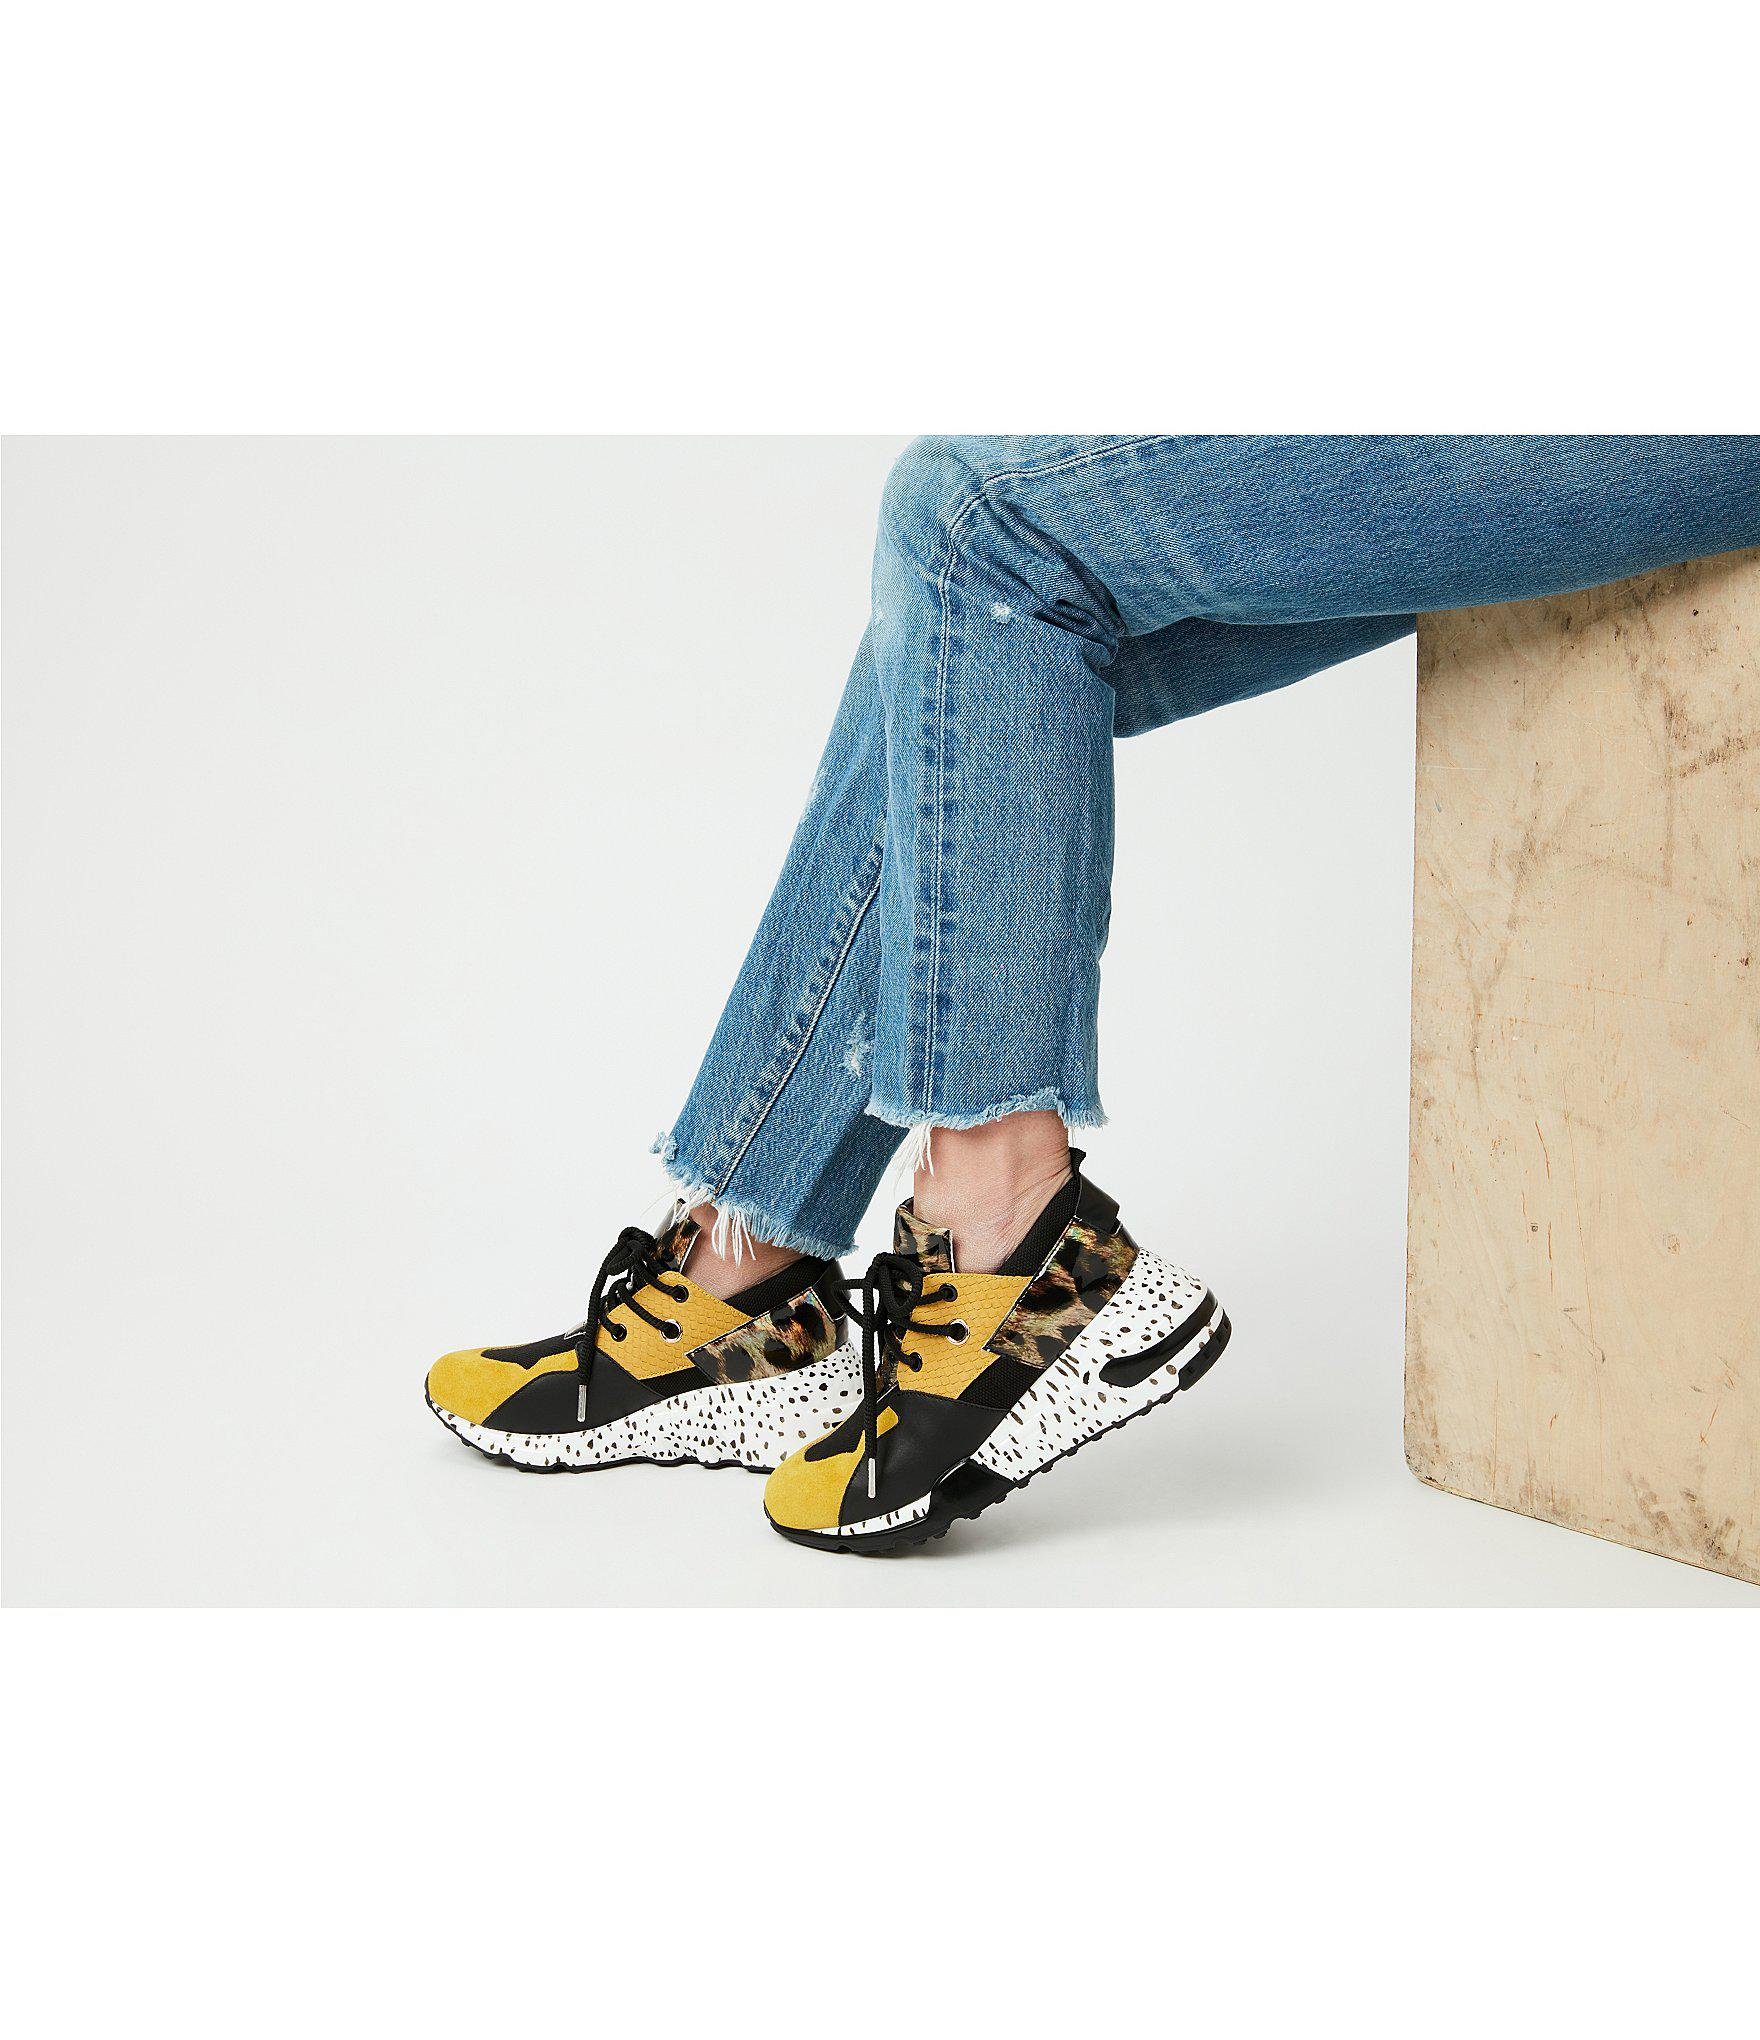 fd7b3524dd4 Lyst - Steve Madden Cliff Leather And Suede Animal Print Sneakers